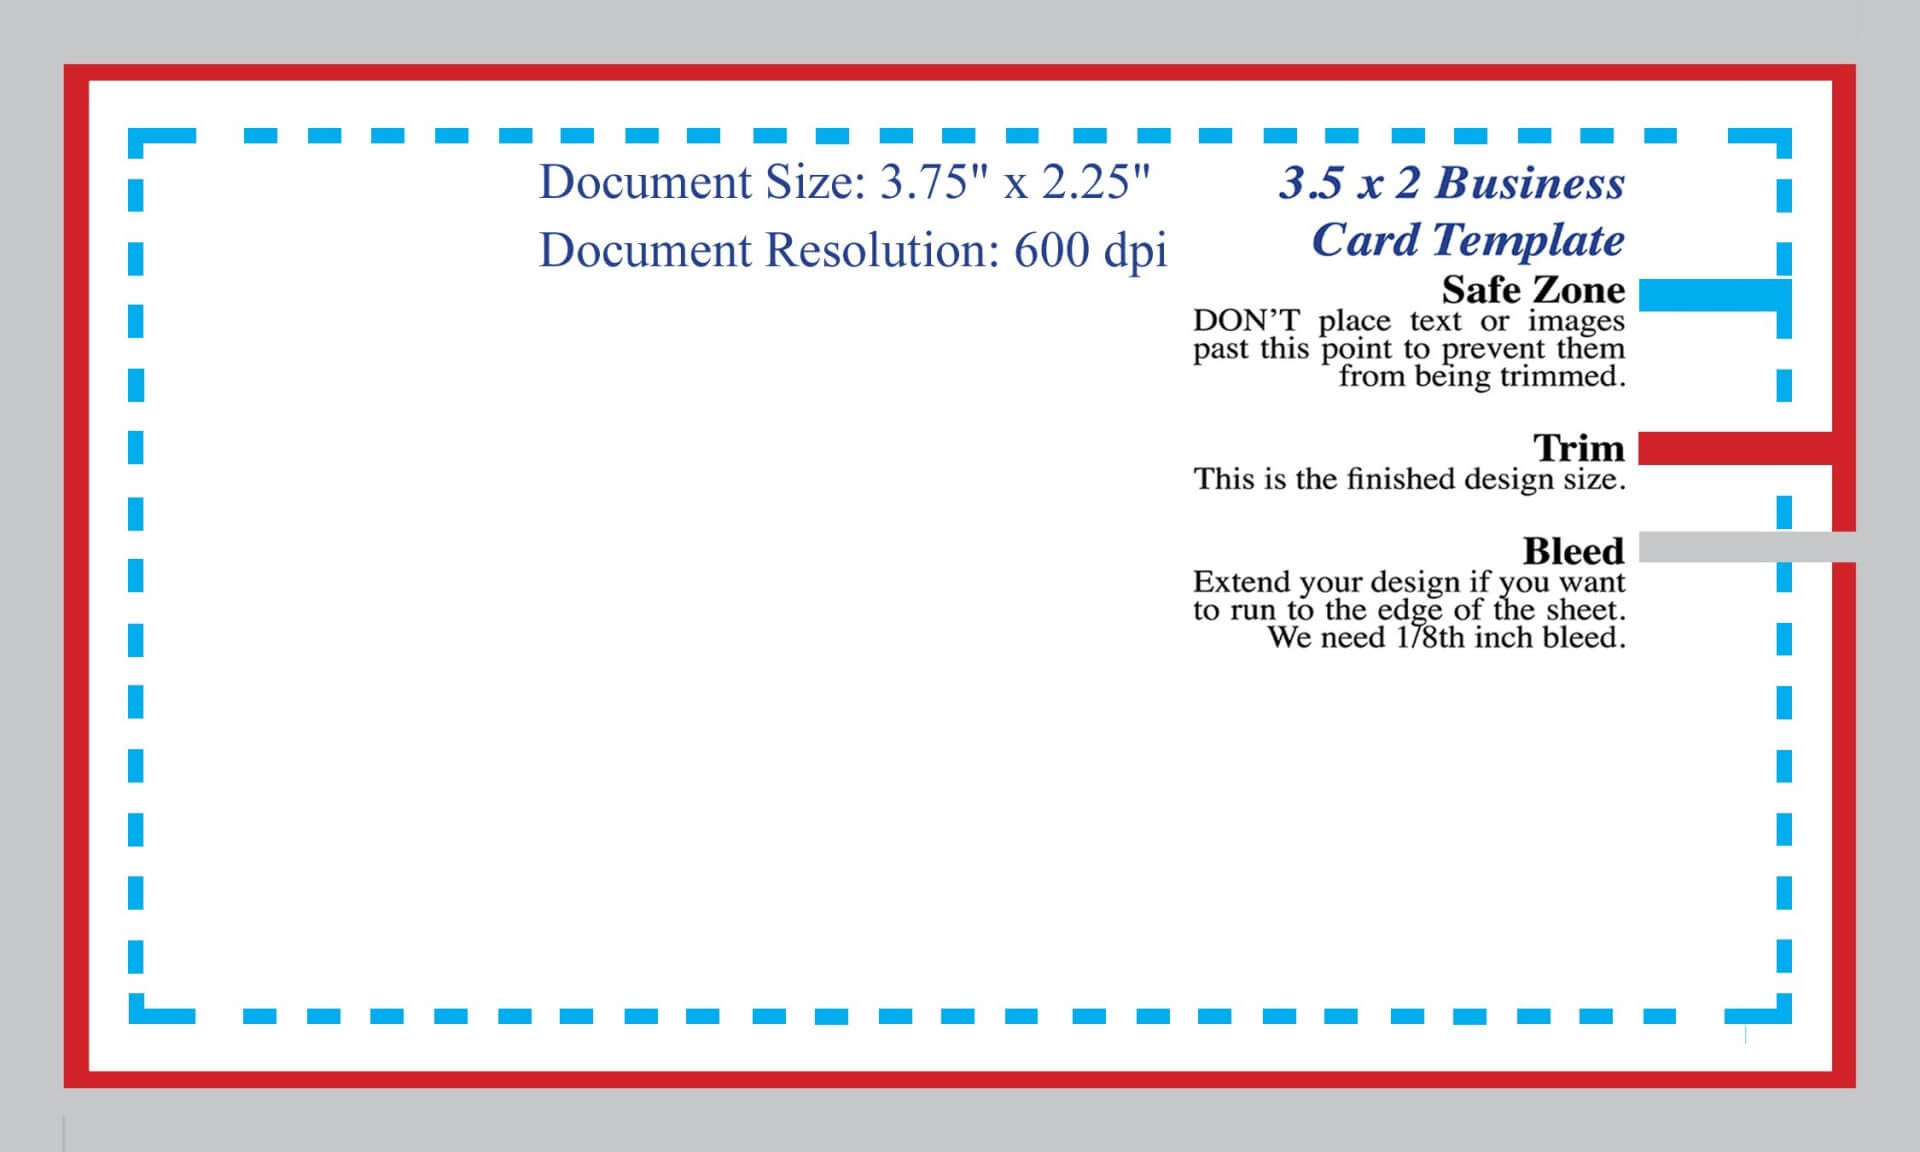 025 Business Card Template Size Photoshop New Of Templates Throughout Business Card Size Psd Template